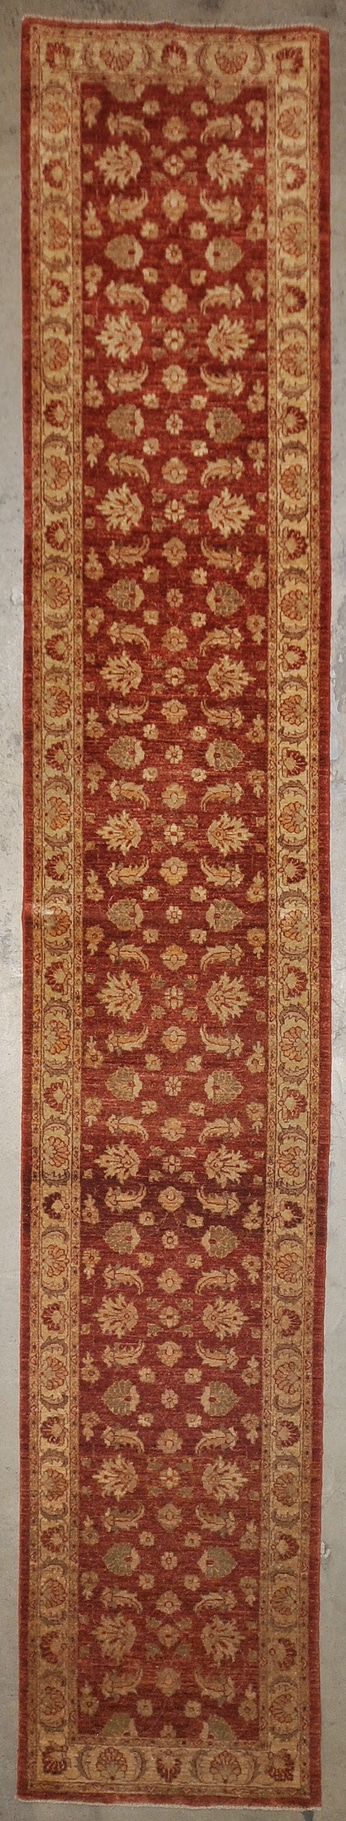 Fine Usak Runner rugs and more oriental carpet-